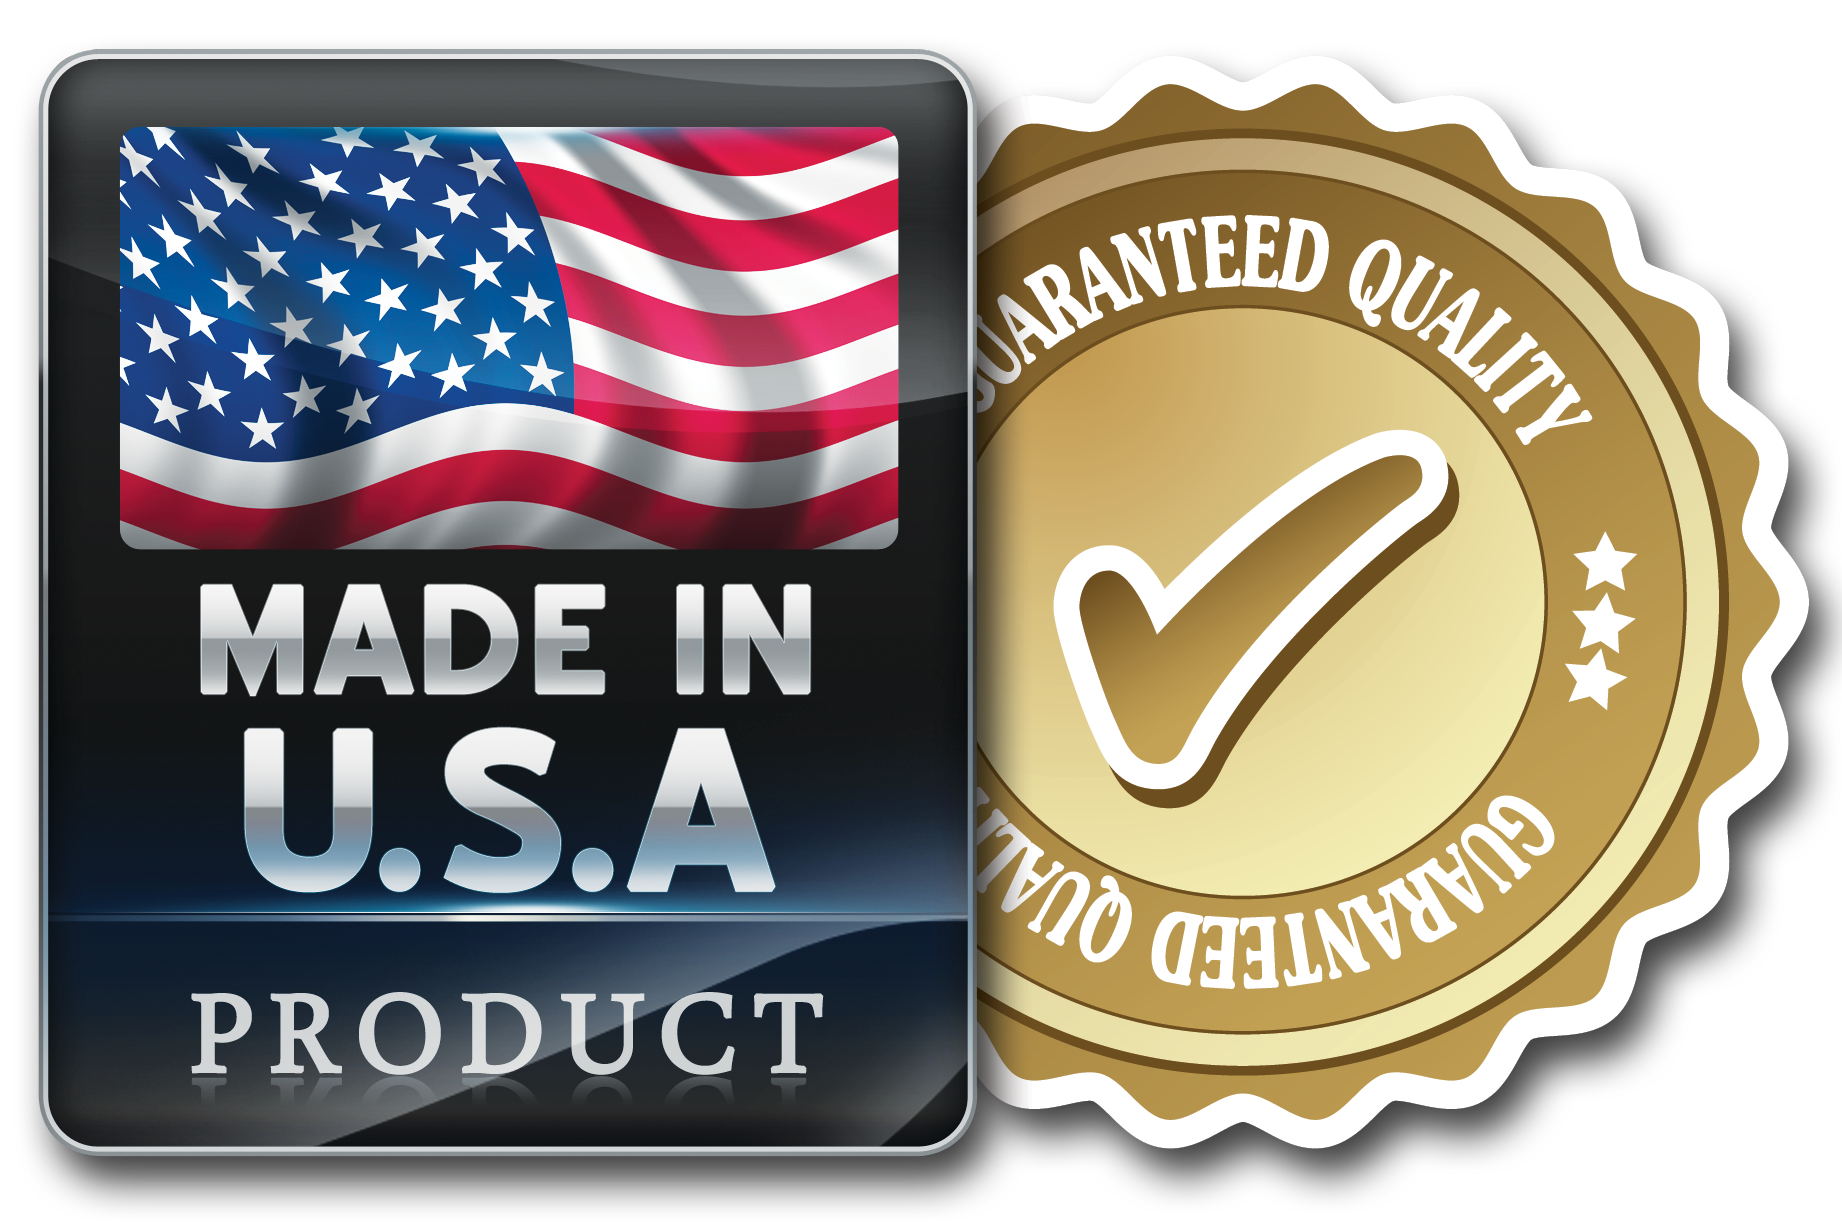 made_usa quality